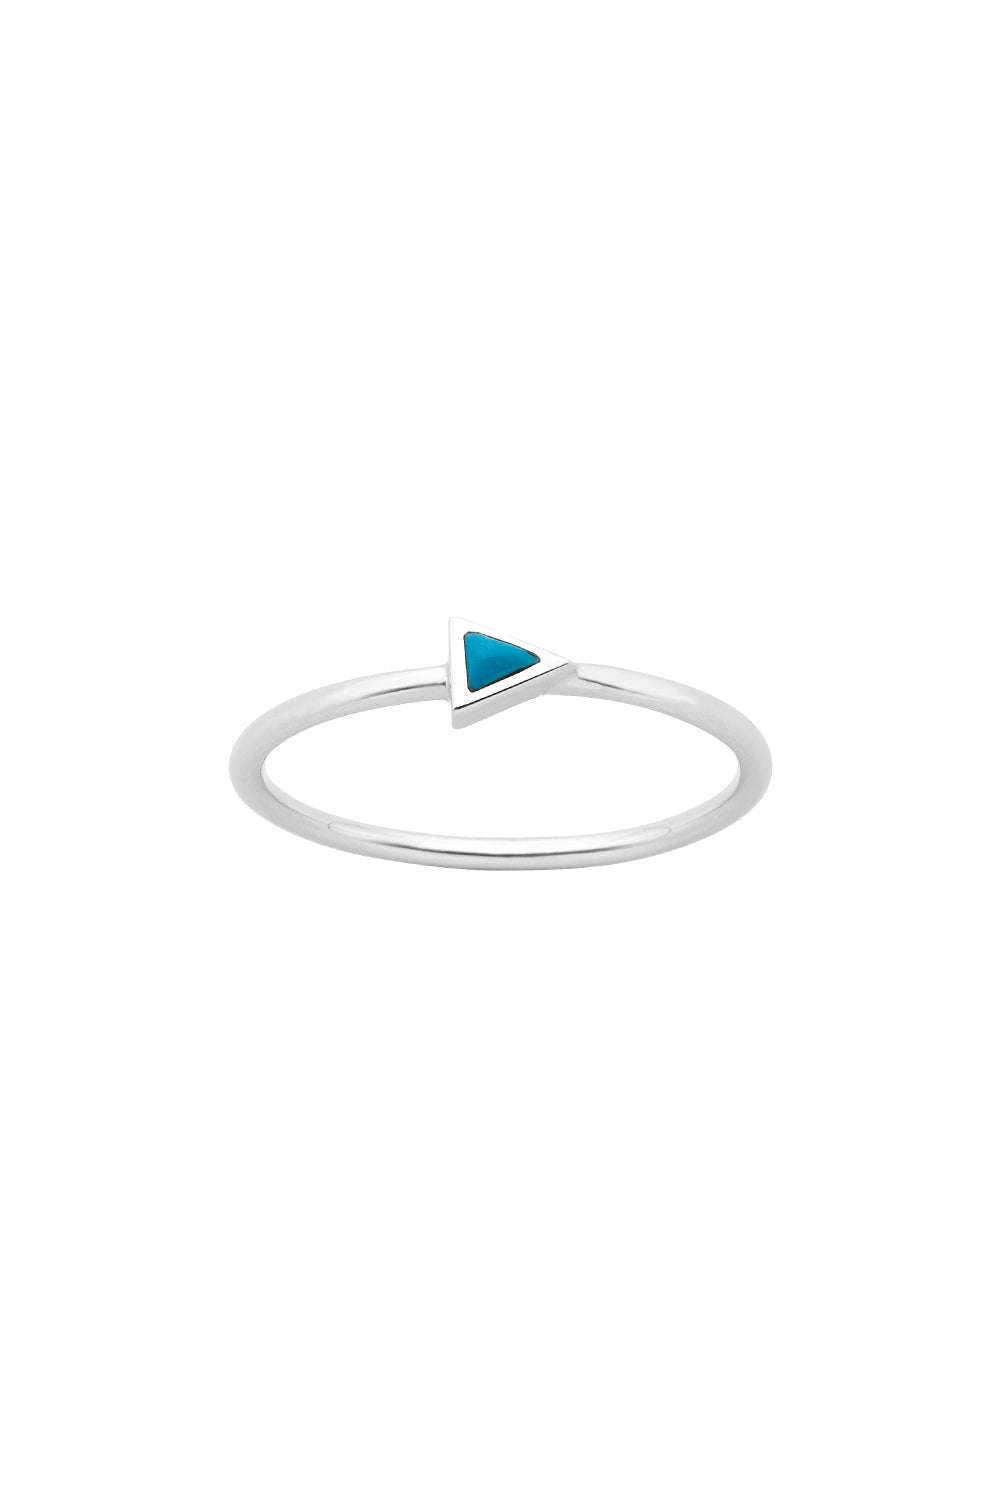 Fine Arrow Ring Silver Turquoise